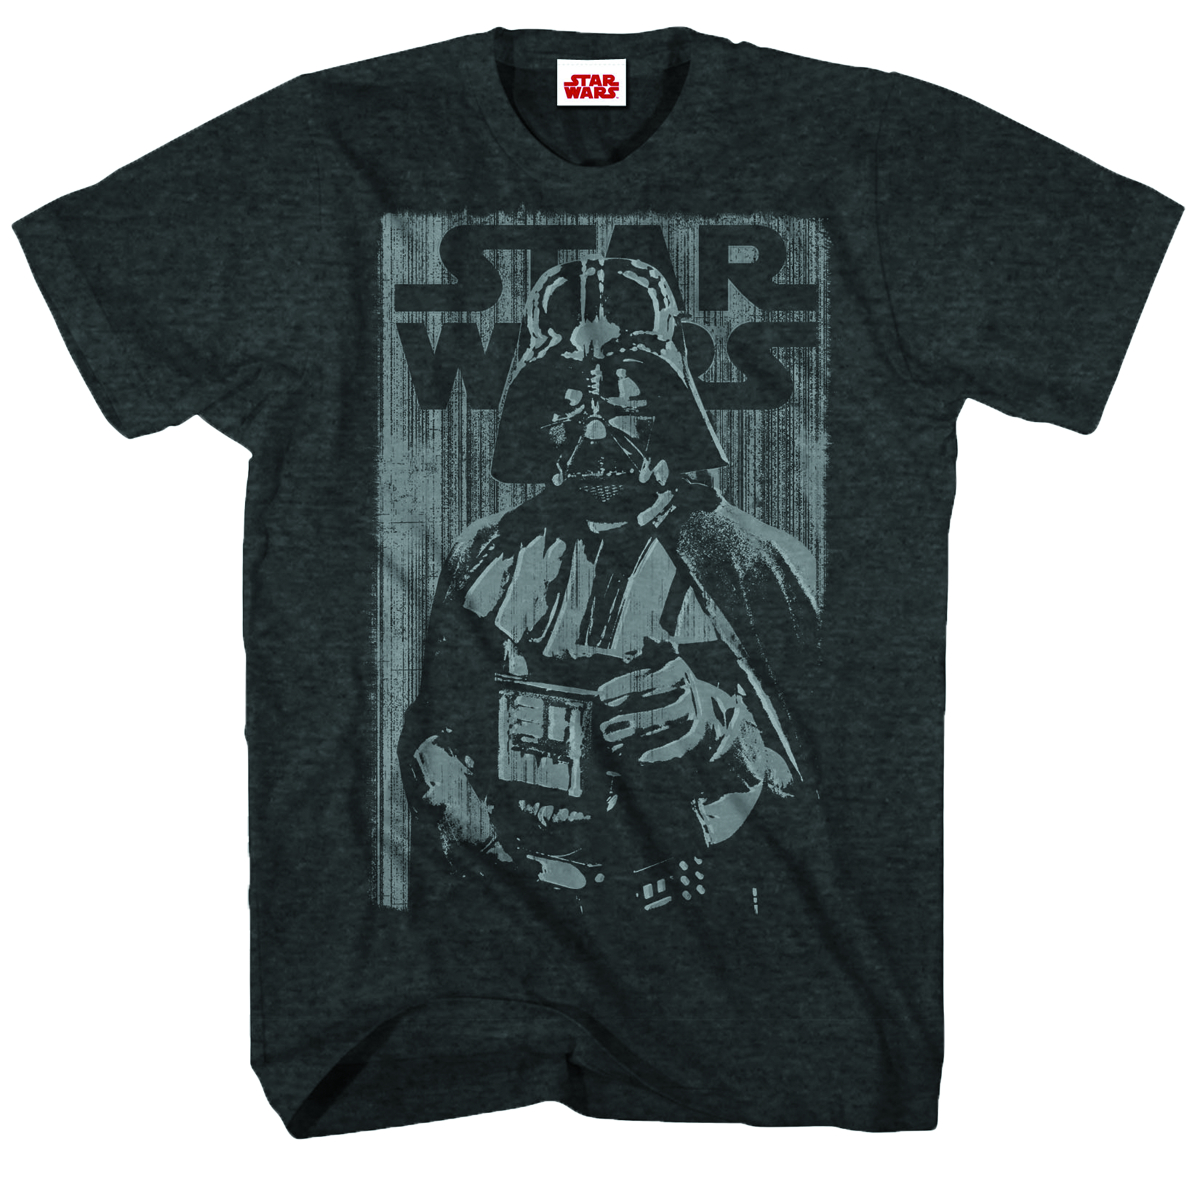 STAR WARS COOL AS ME PX BLK HEATHER T/S XXL